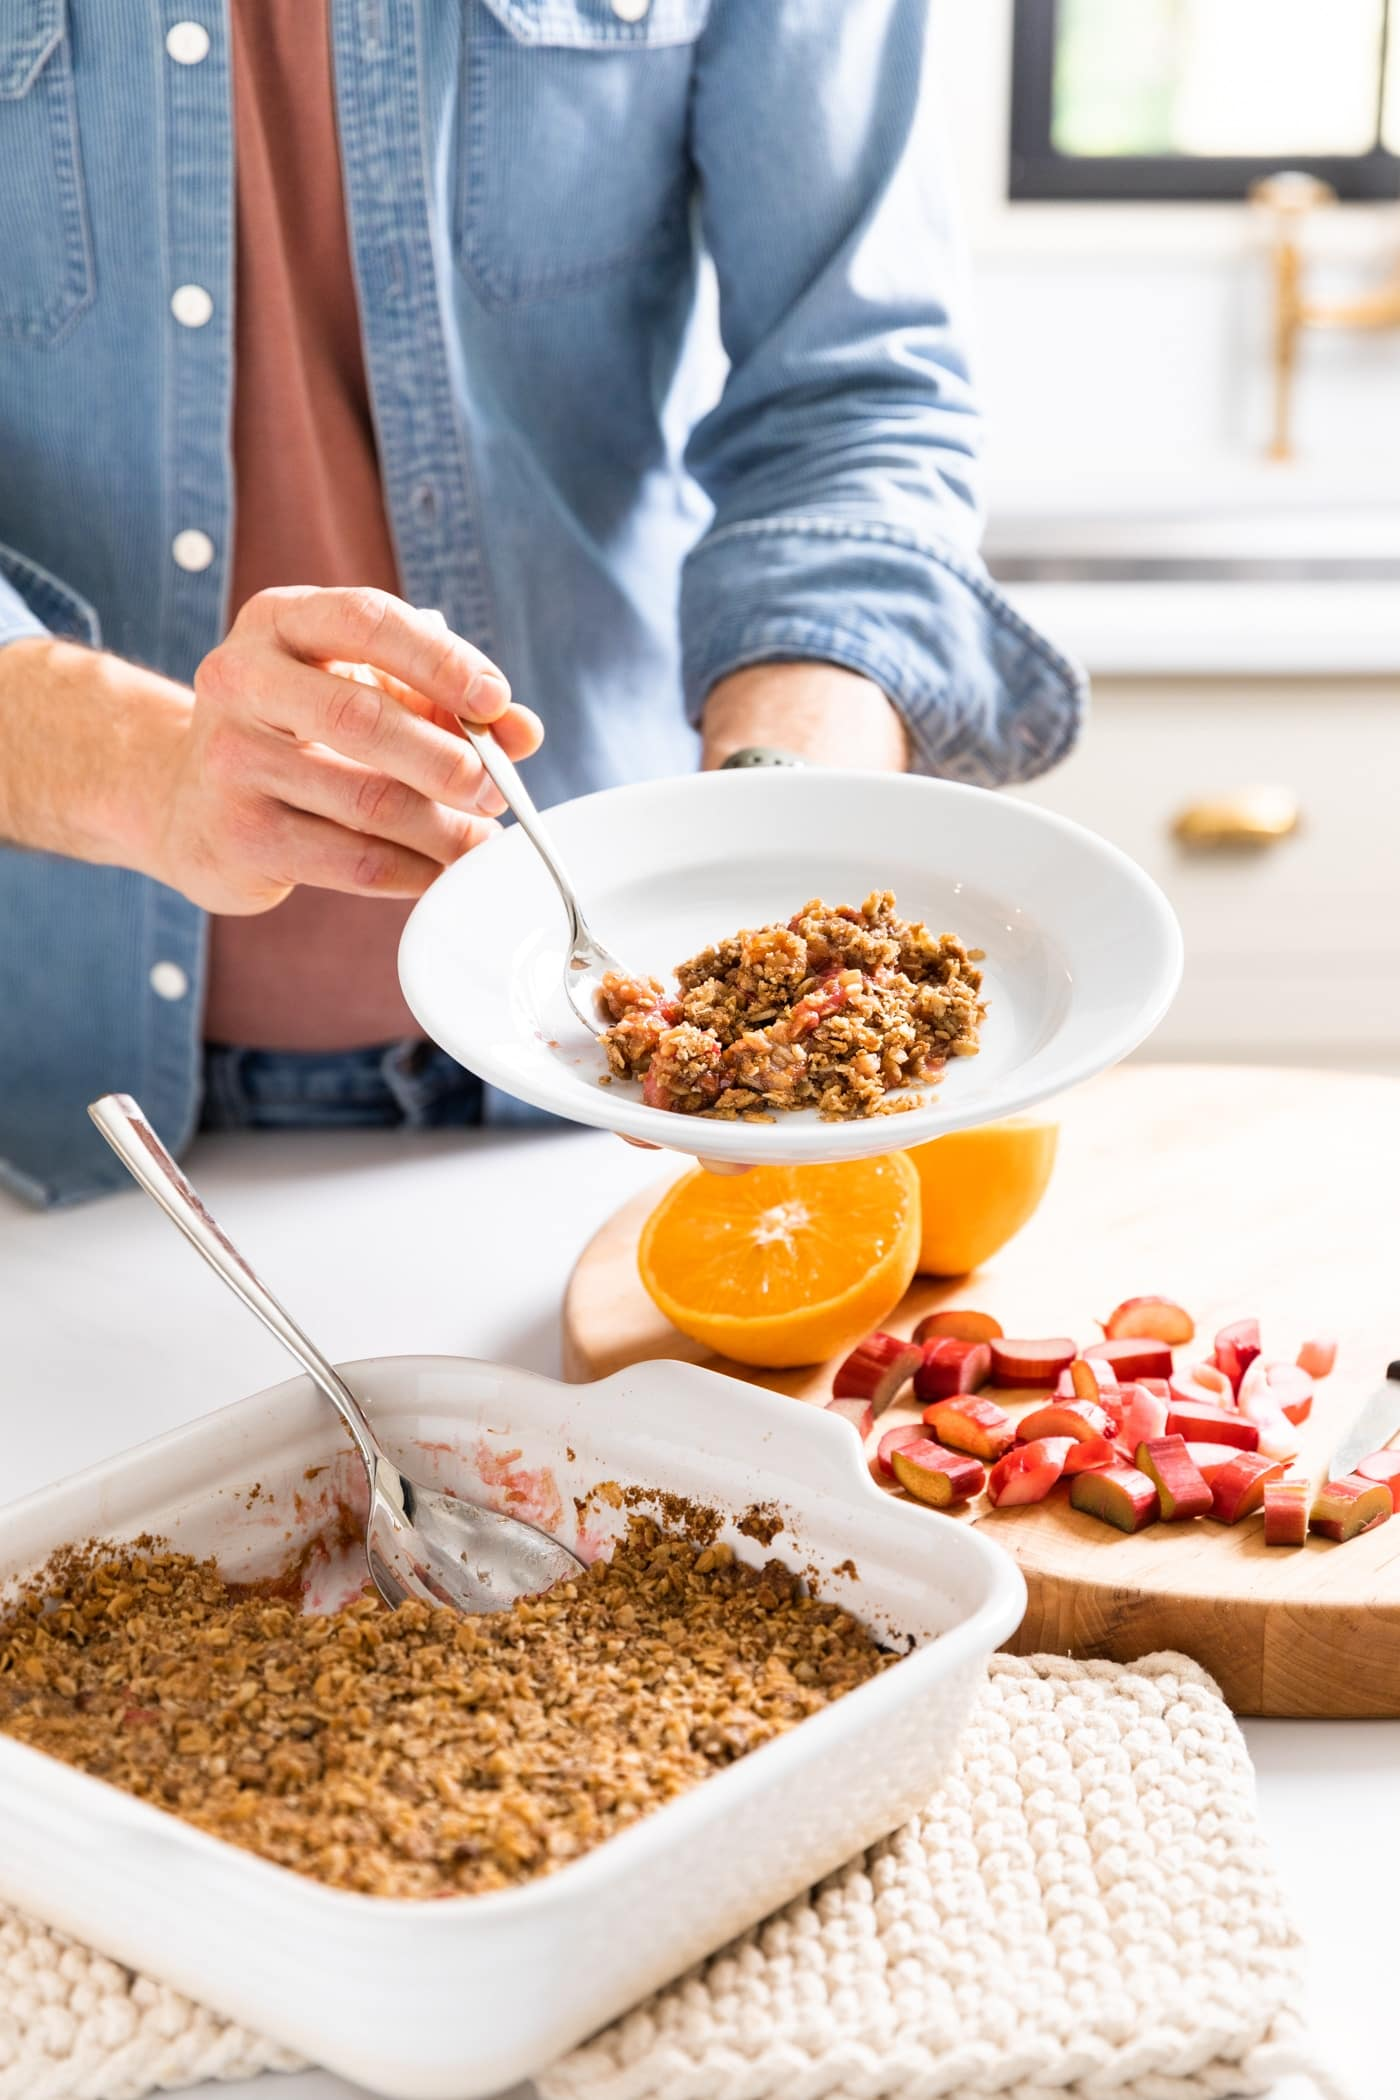 Man with blue shirt holding white plate with scoop of rhubarb crisp taken out of pan below with extra cut rhubarb in background